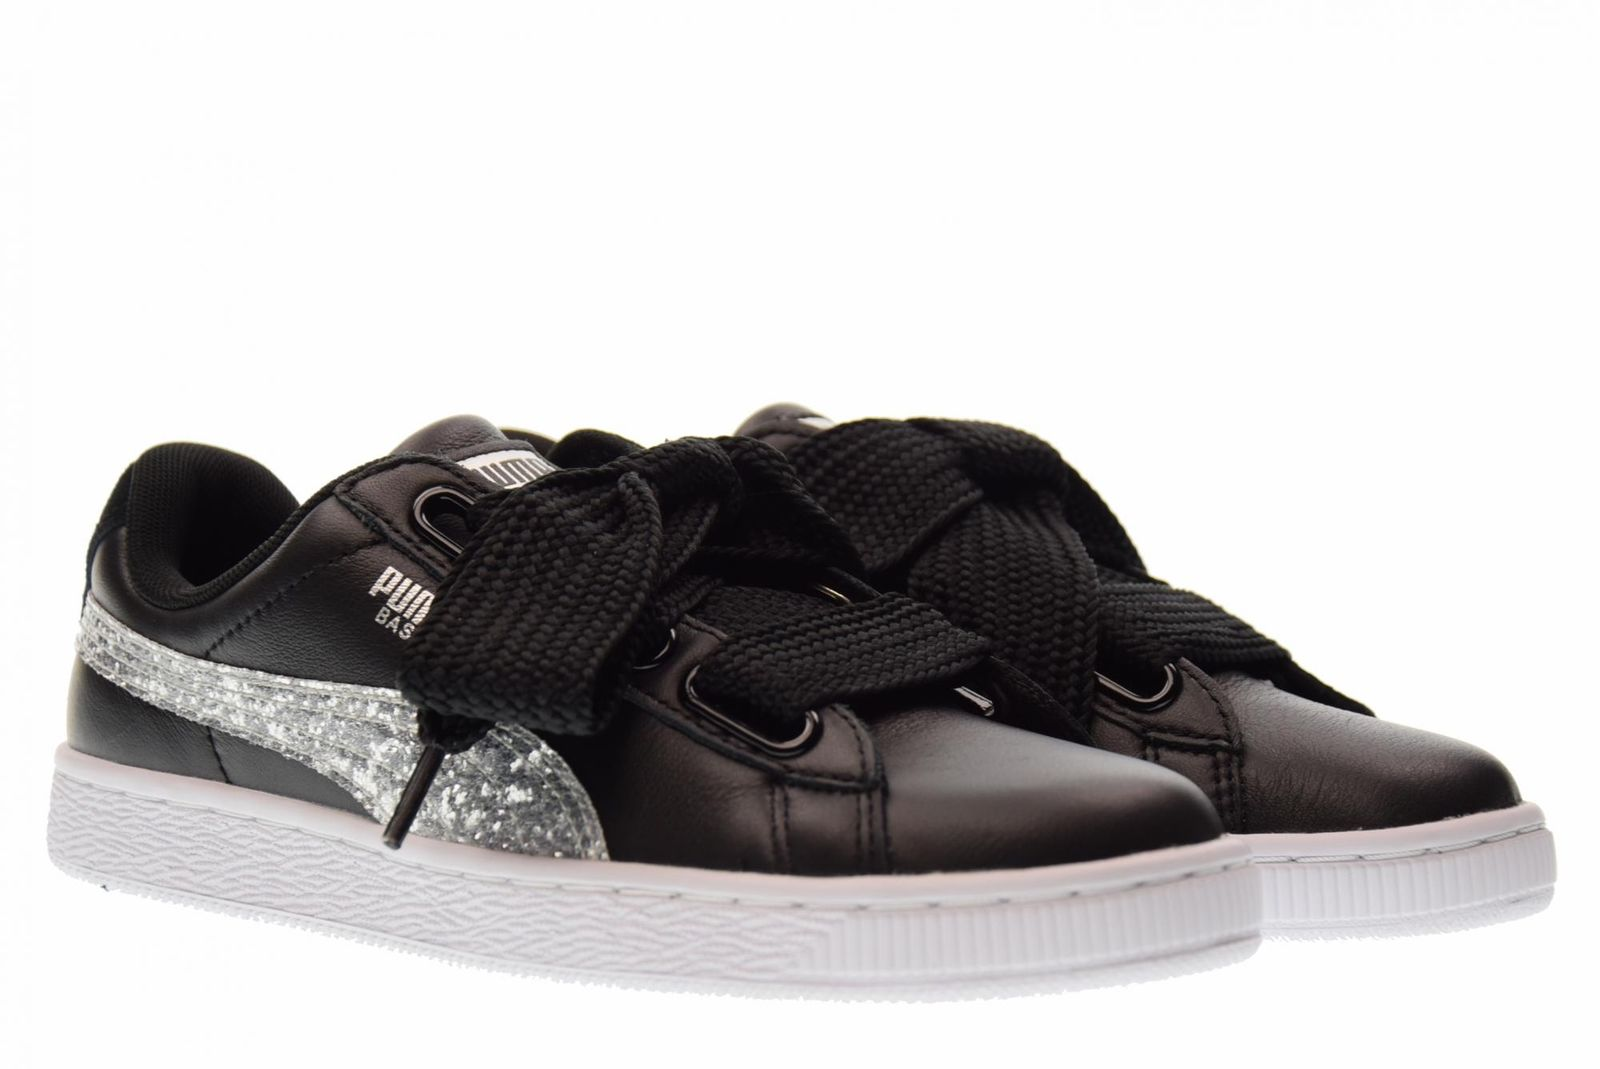 the latest 50d98 b3196 Details about Puma 364078 03 Basket Heart Glitter Black Silver Women's  Athletic Sneaker